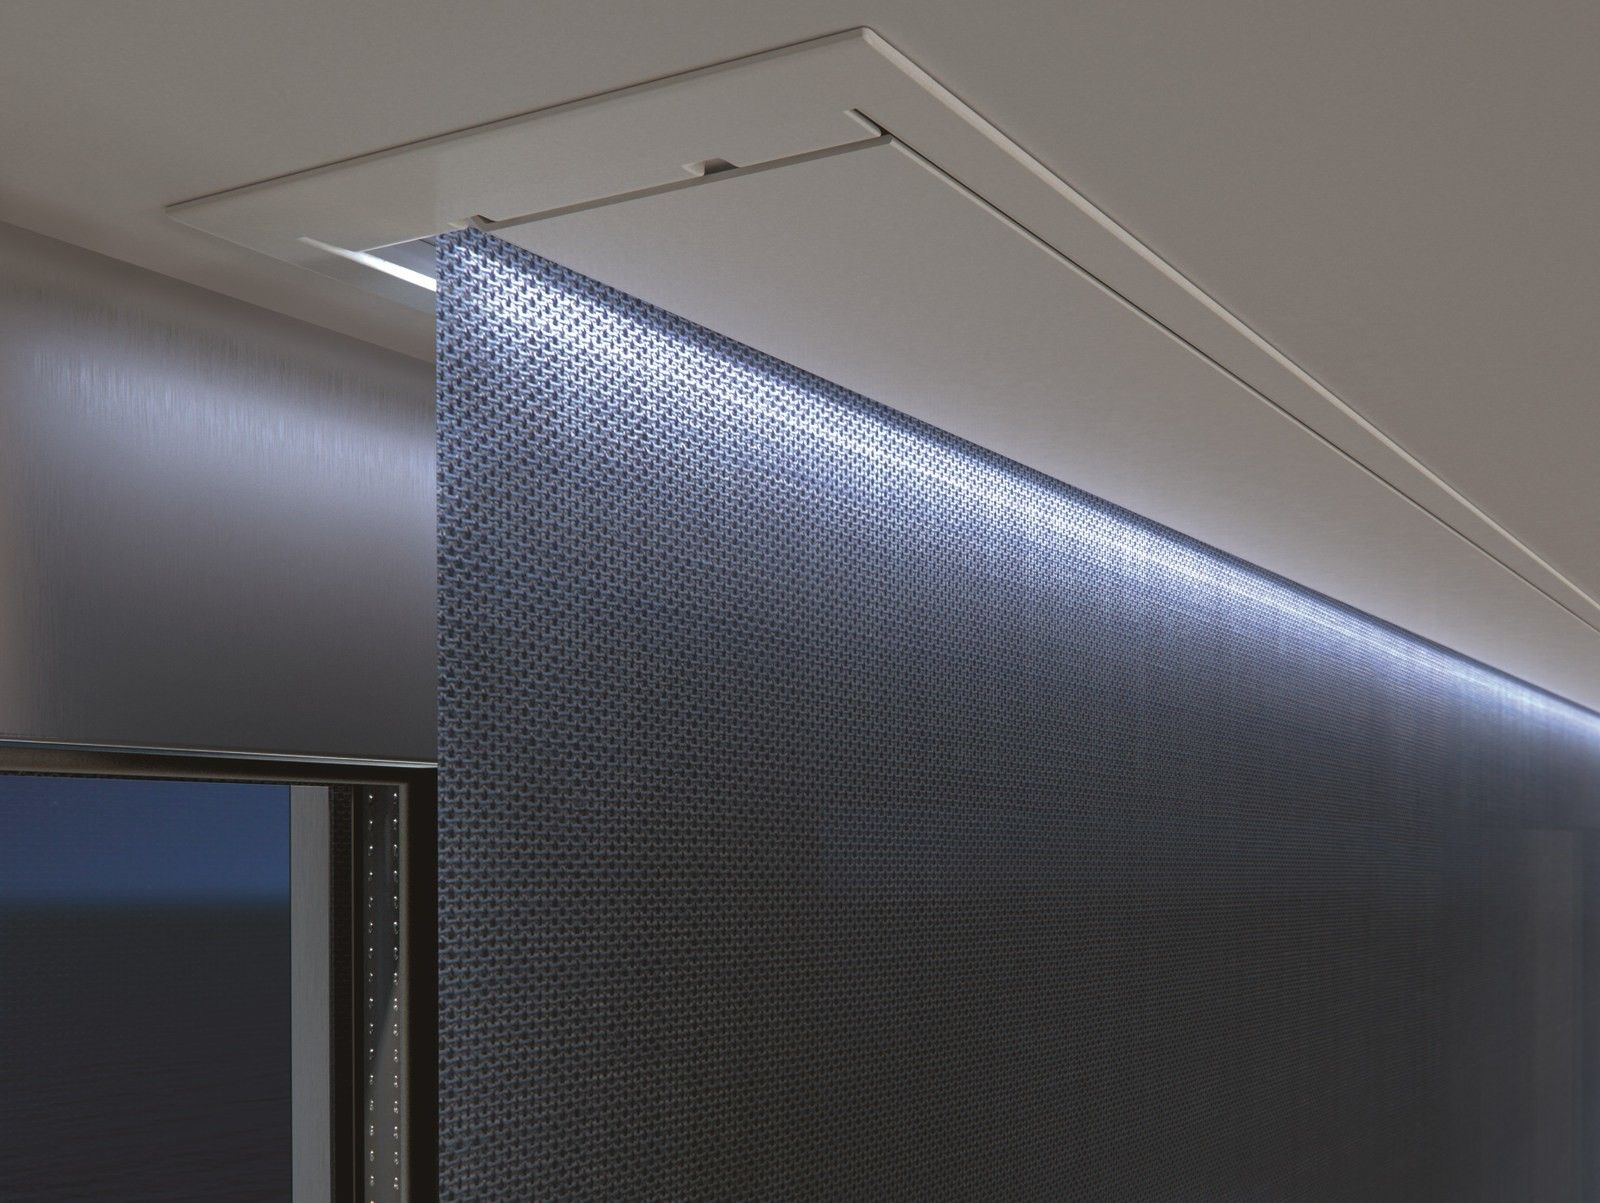 Electric Dimming Fabric Roller Blind Topbox By Mottura Fabric Roller Blinds Roller Blinds Blinds